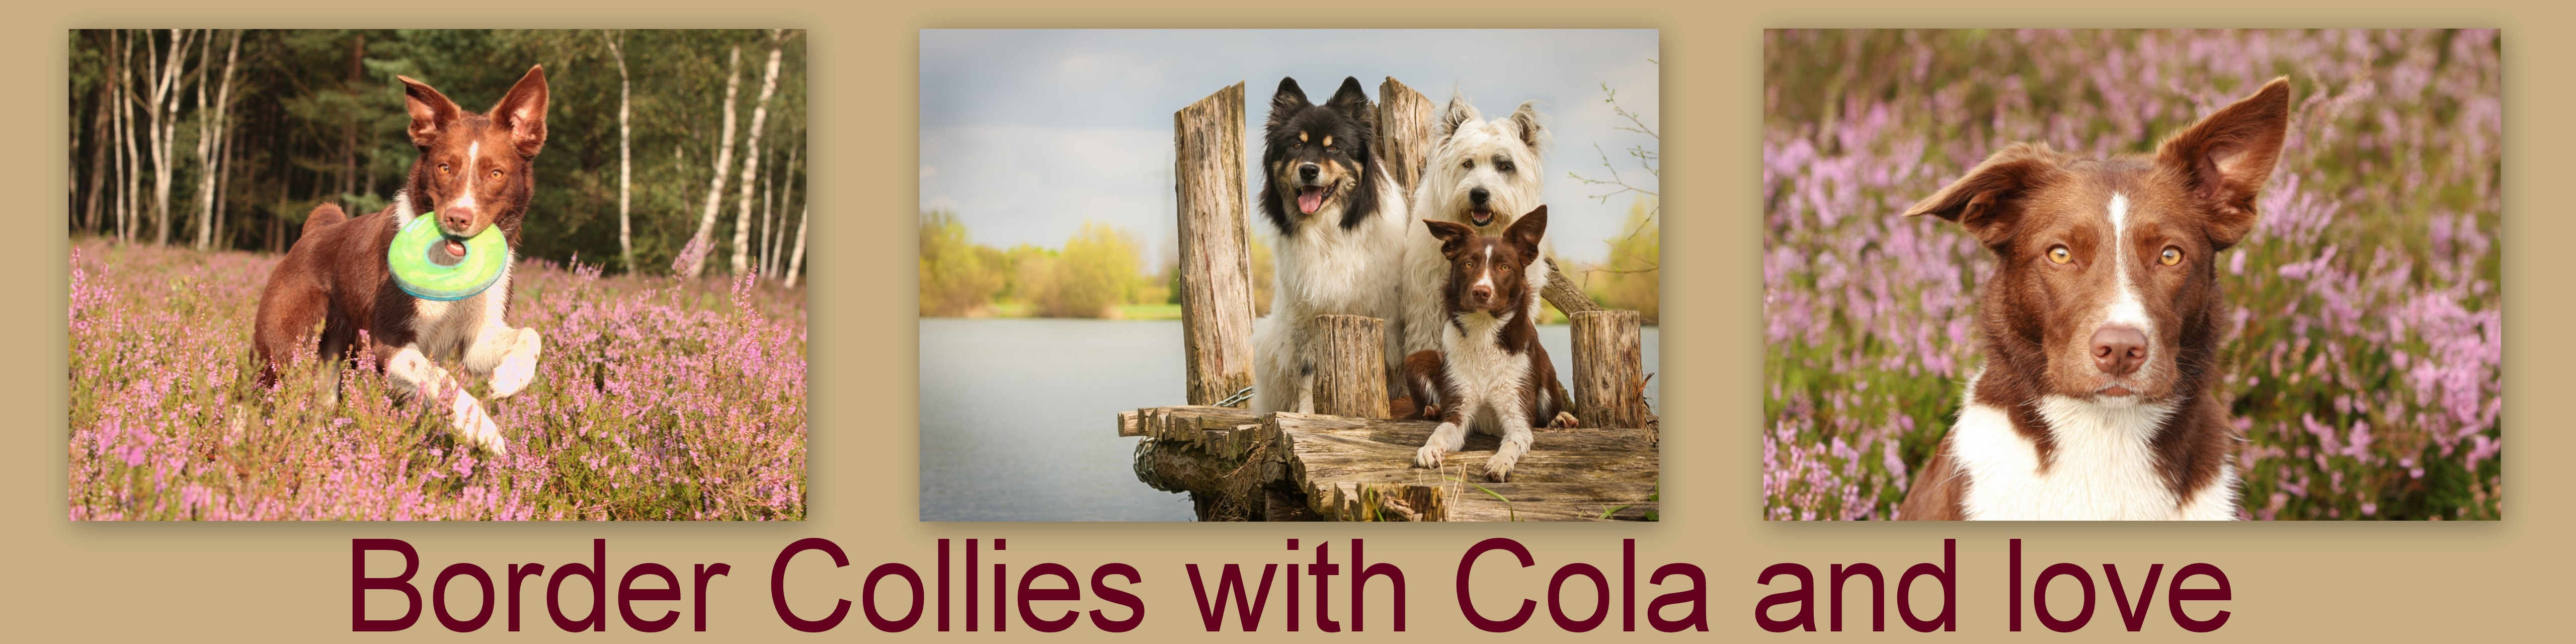 Banner Border Collies with Cola and love